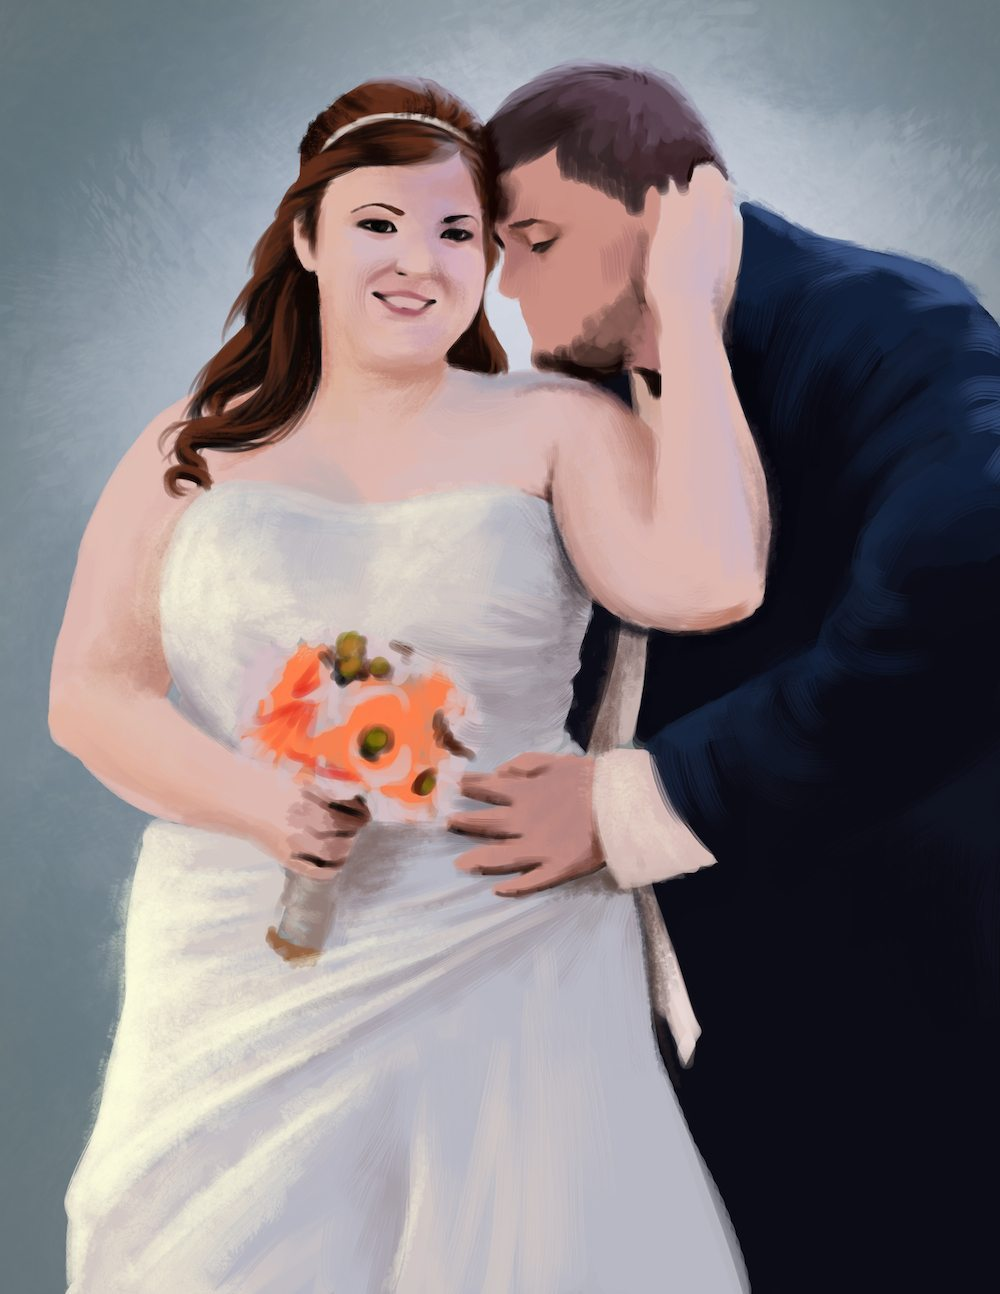 Wedding Portrait Draft by Shobey1kanoby